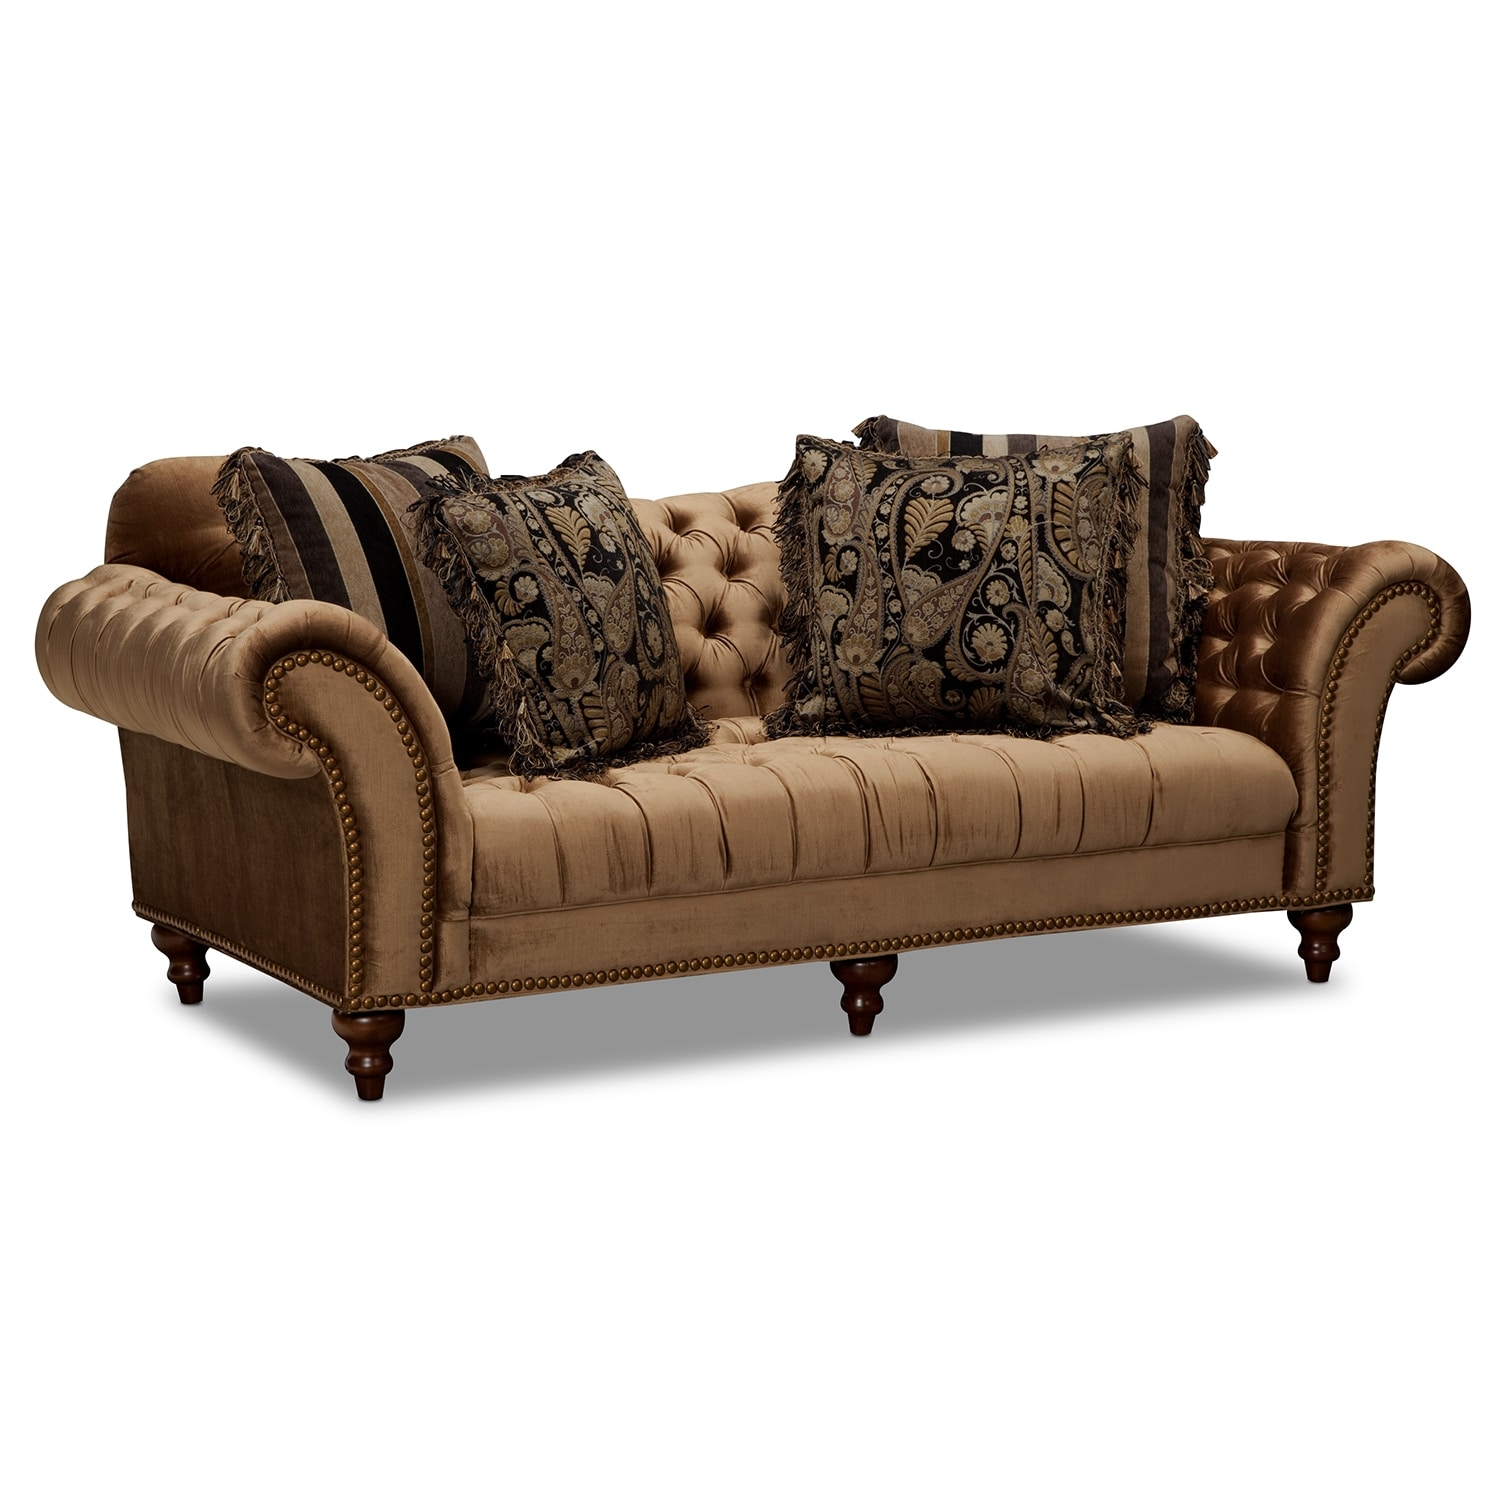 The brittney collection bronze american signature for American signature furniture commercial chaise